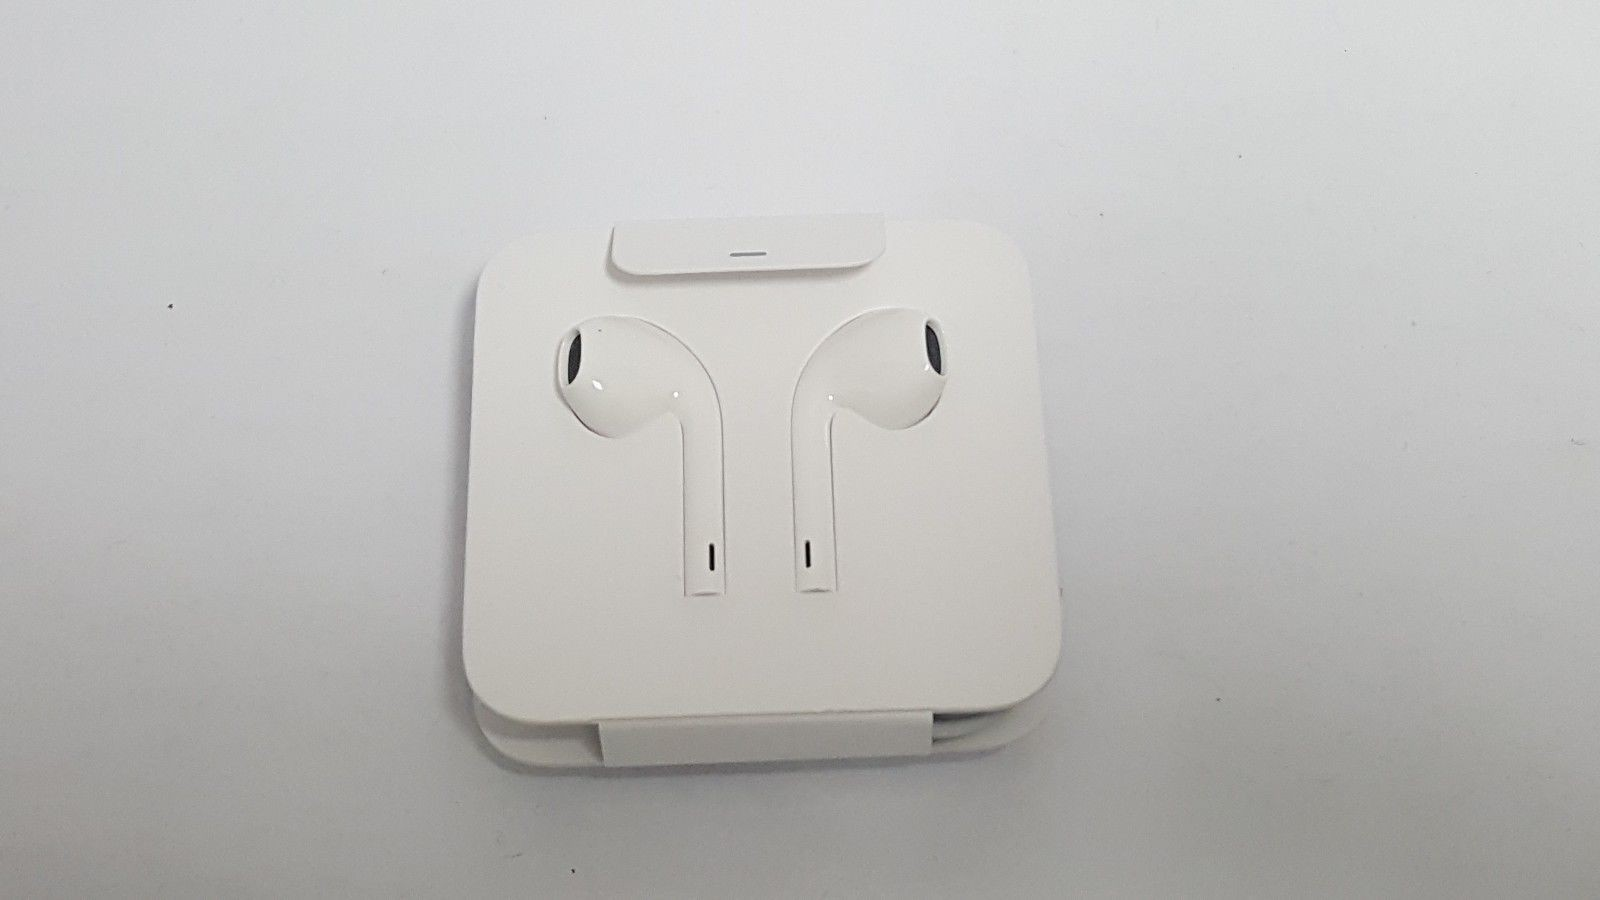 Earpods With Lightning Connector (12)